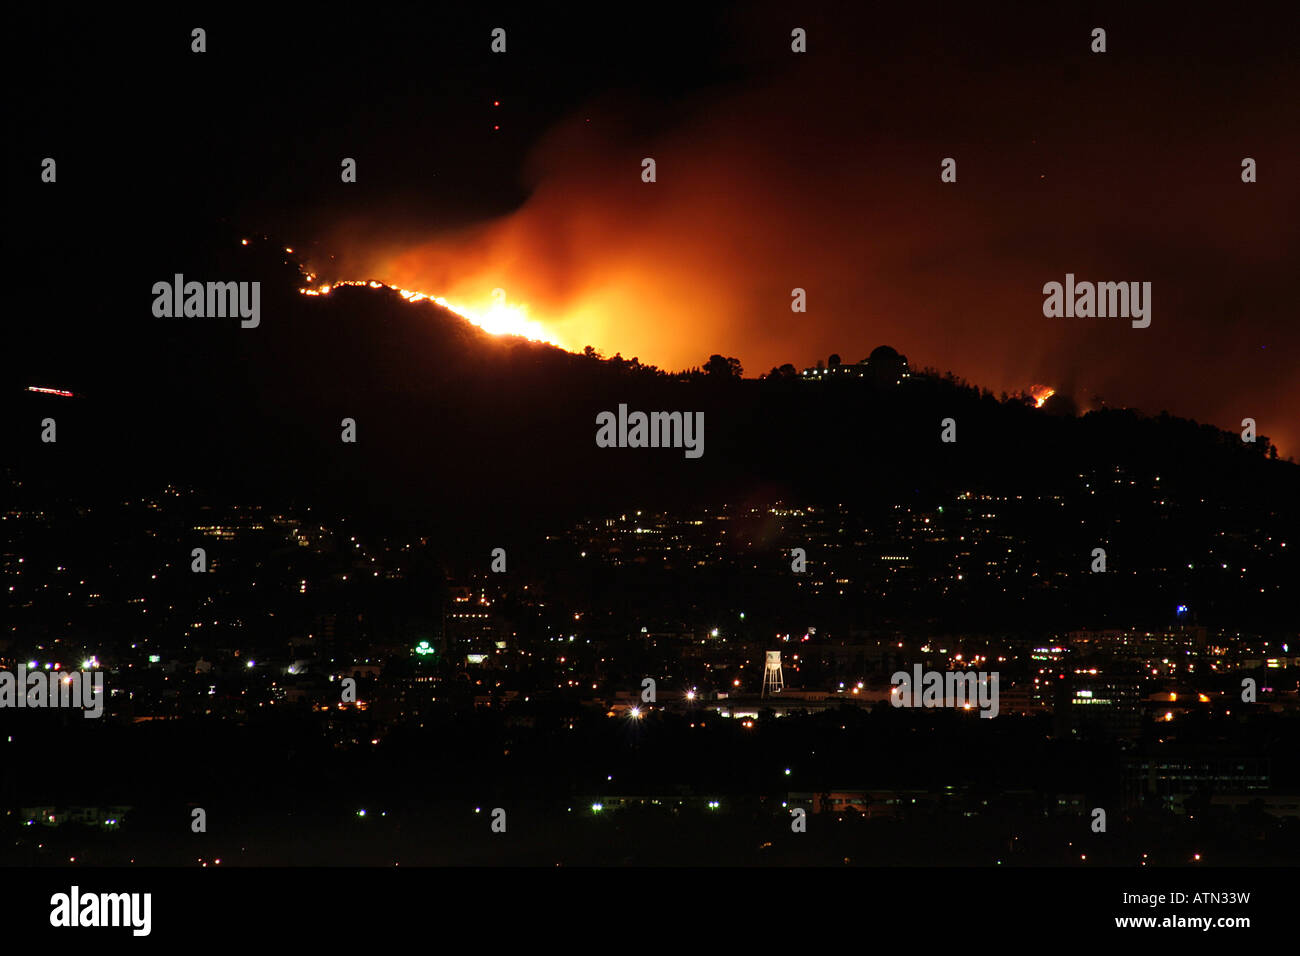 Los Angeles fire of May 2007 - Stock Image